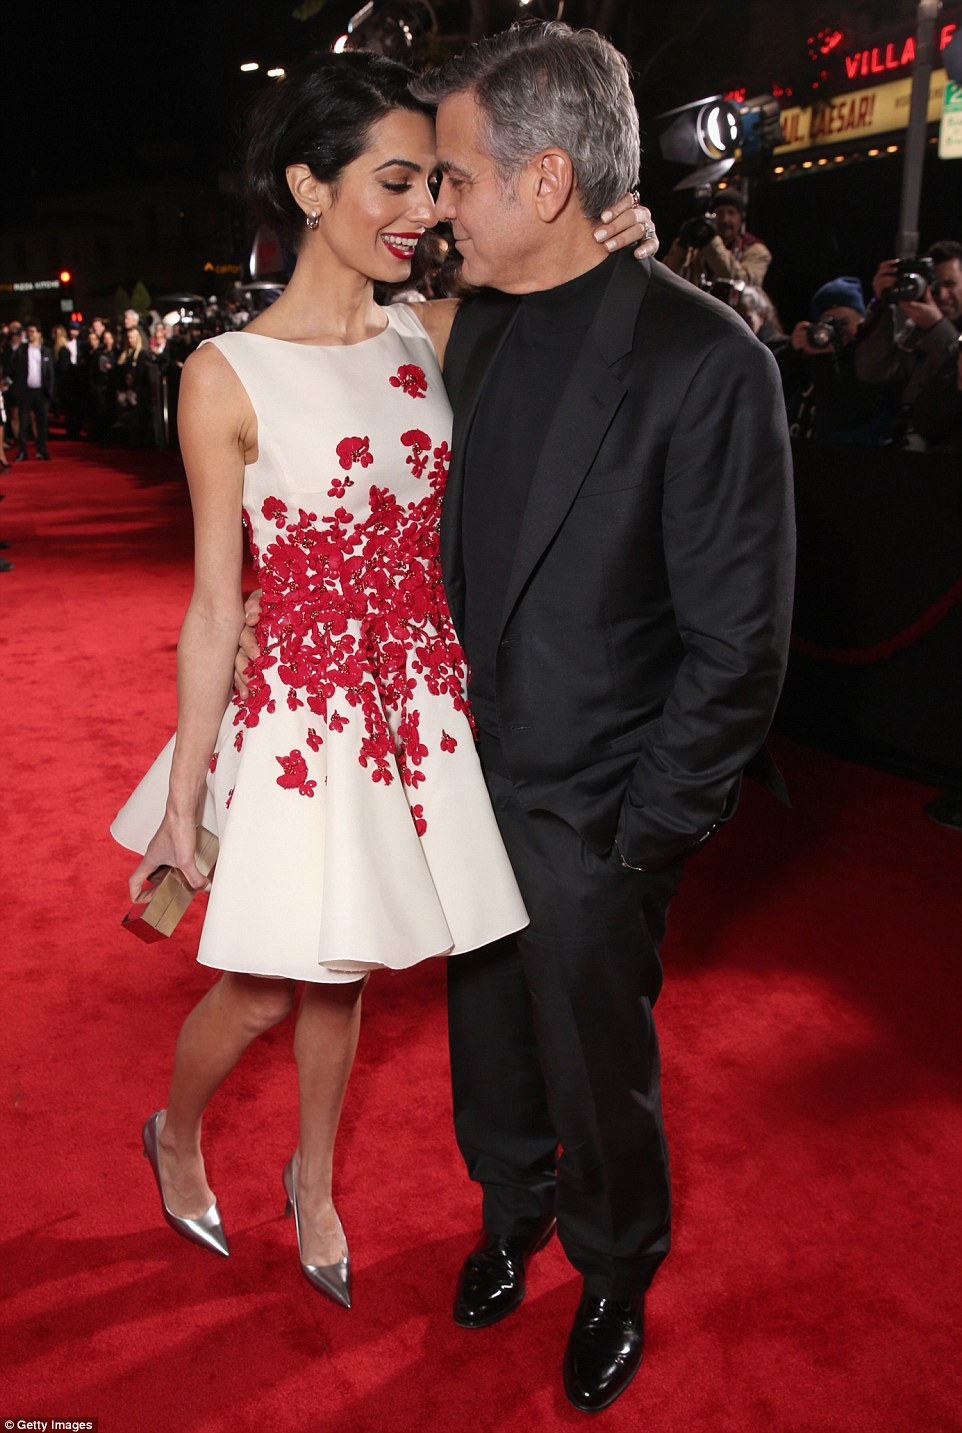 George Clooney and Amal Clooney at the Hail Caesar Premiere LA 30CBAE4700000578-3427580-Golden_couple_George_Clooney_looked_proud_as_he_brought_his_wife-m-74_1454386459007